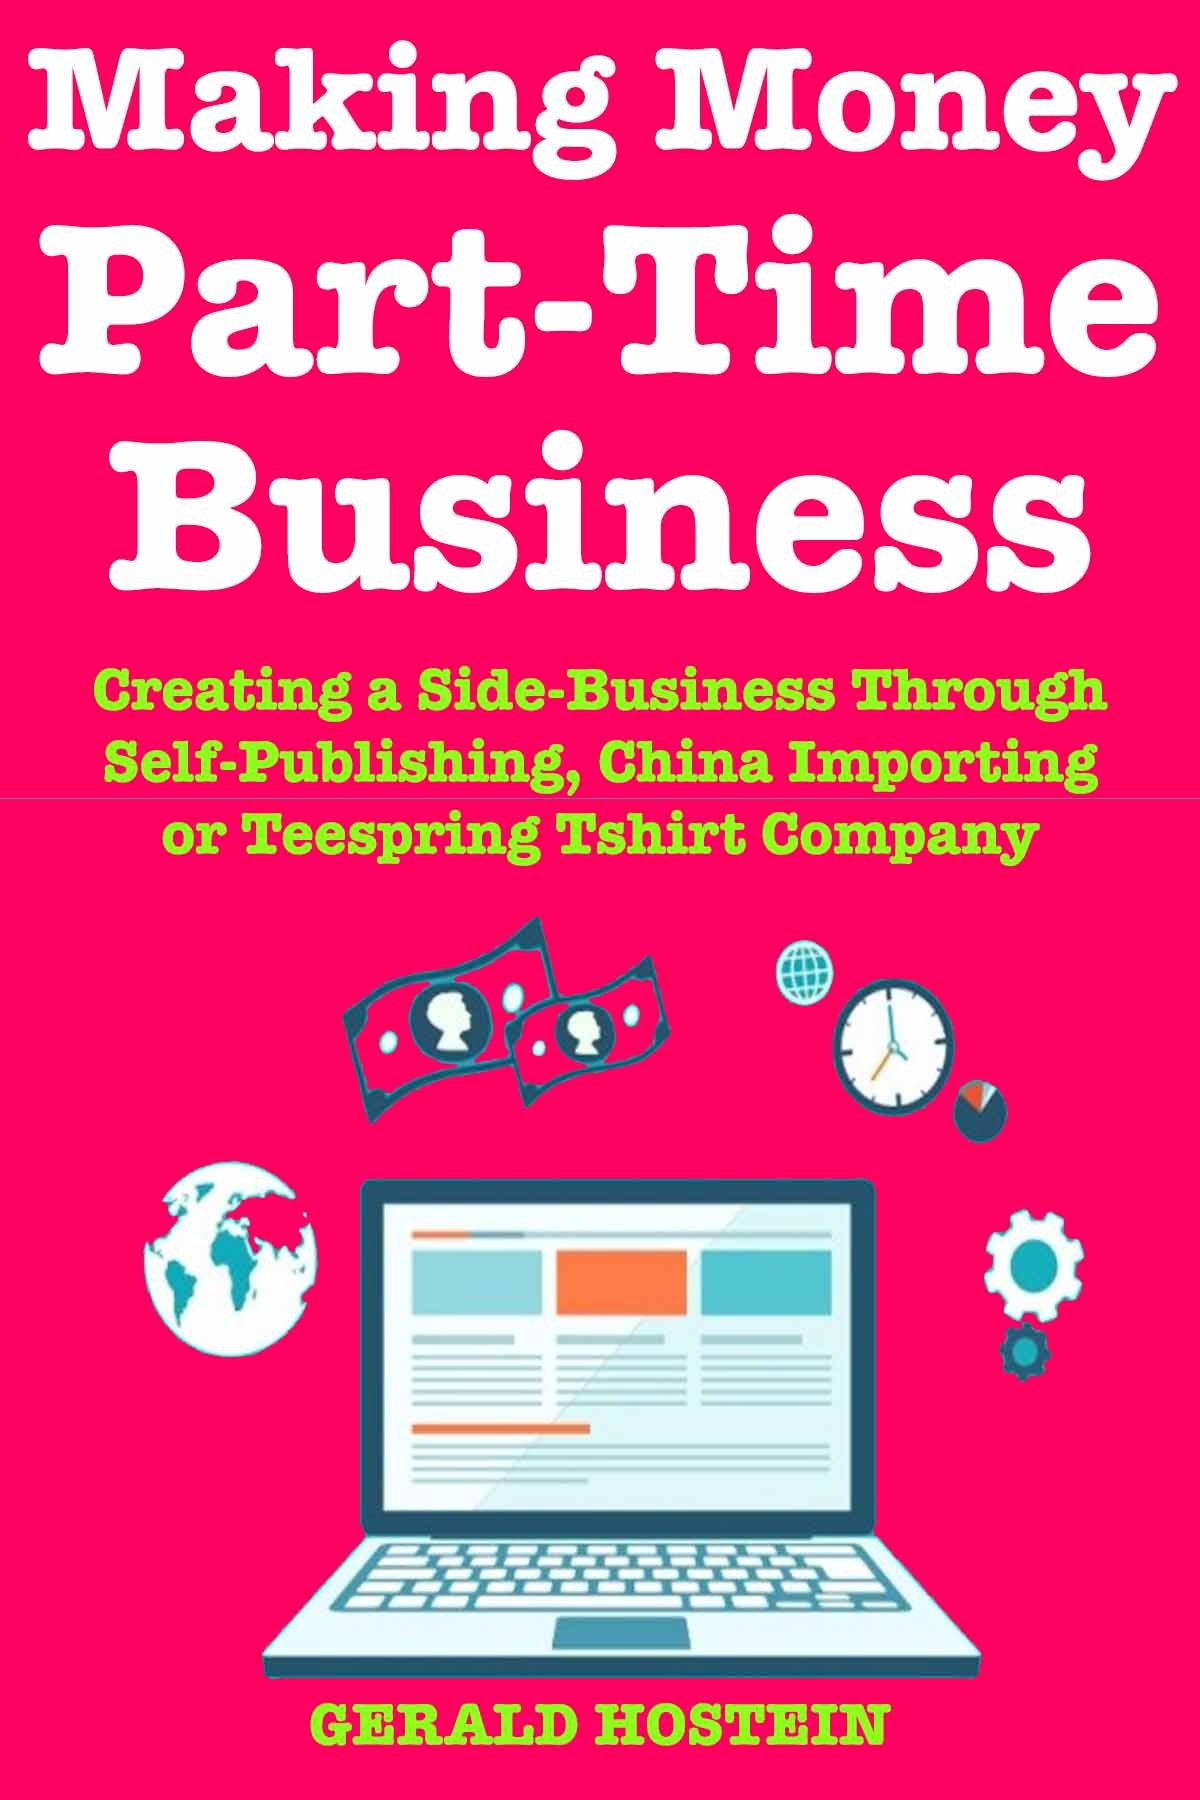 Making Money Part-Time Business: Creating a Side-Business Through Self-Publishing, China Importing or Teespring Tshirt Company